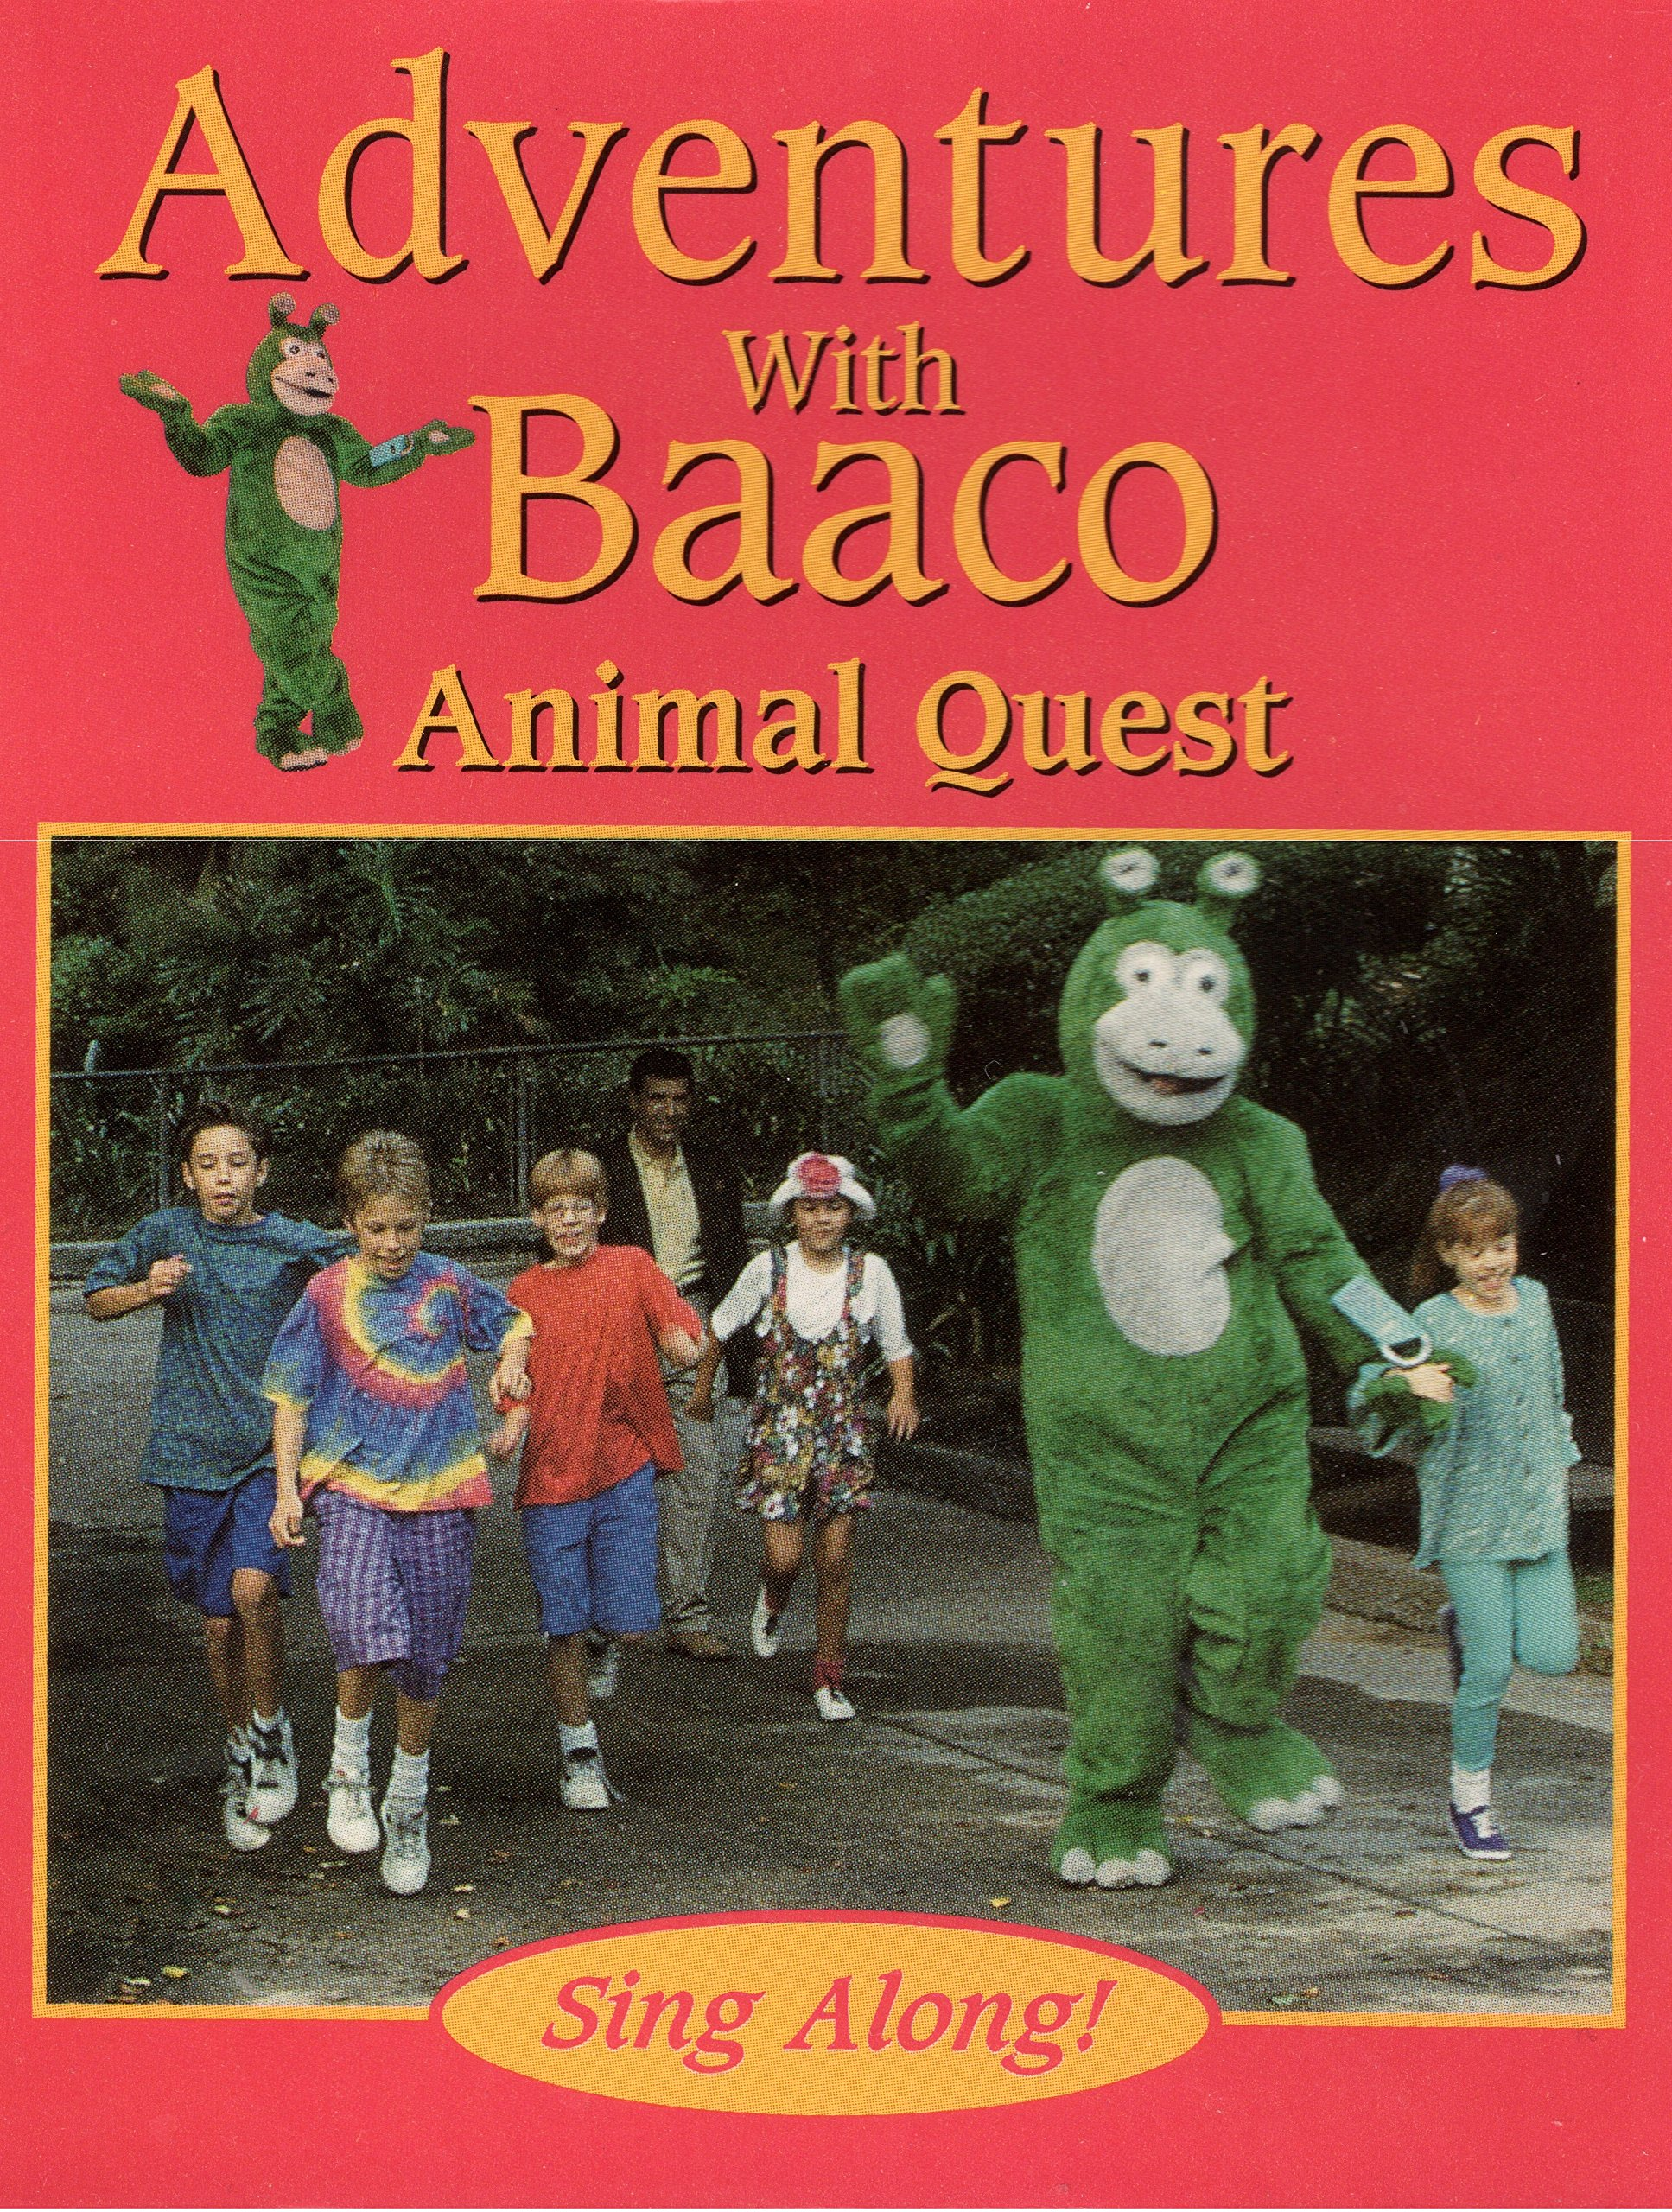 Adventures with Baaco : Animal Quest on Amazon Prime Instant Video UK